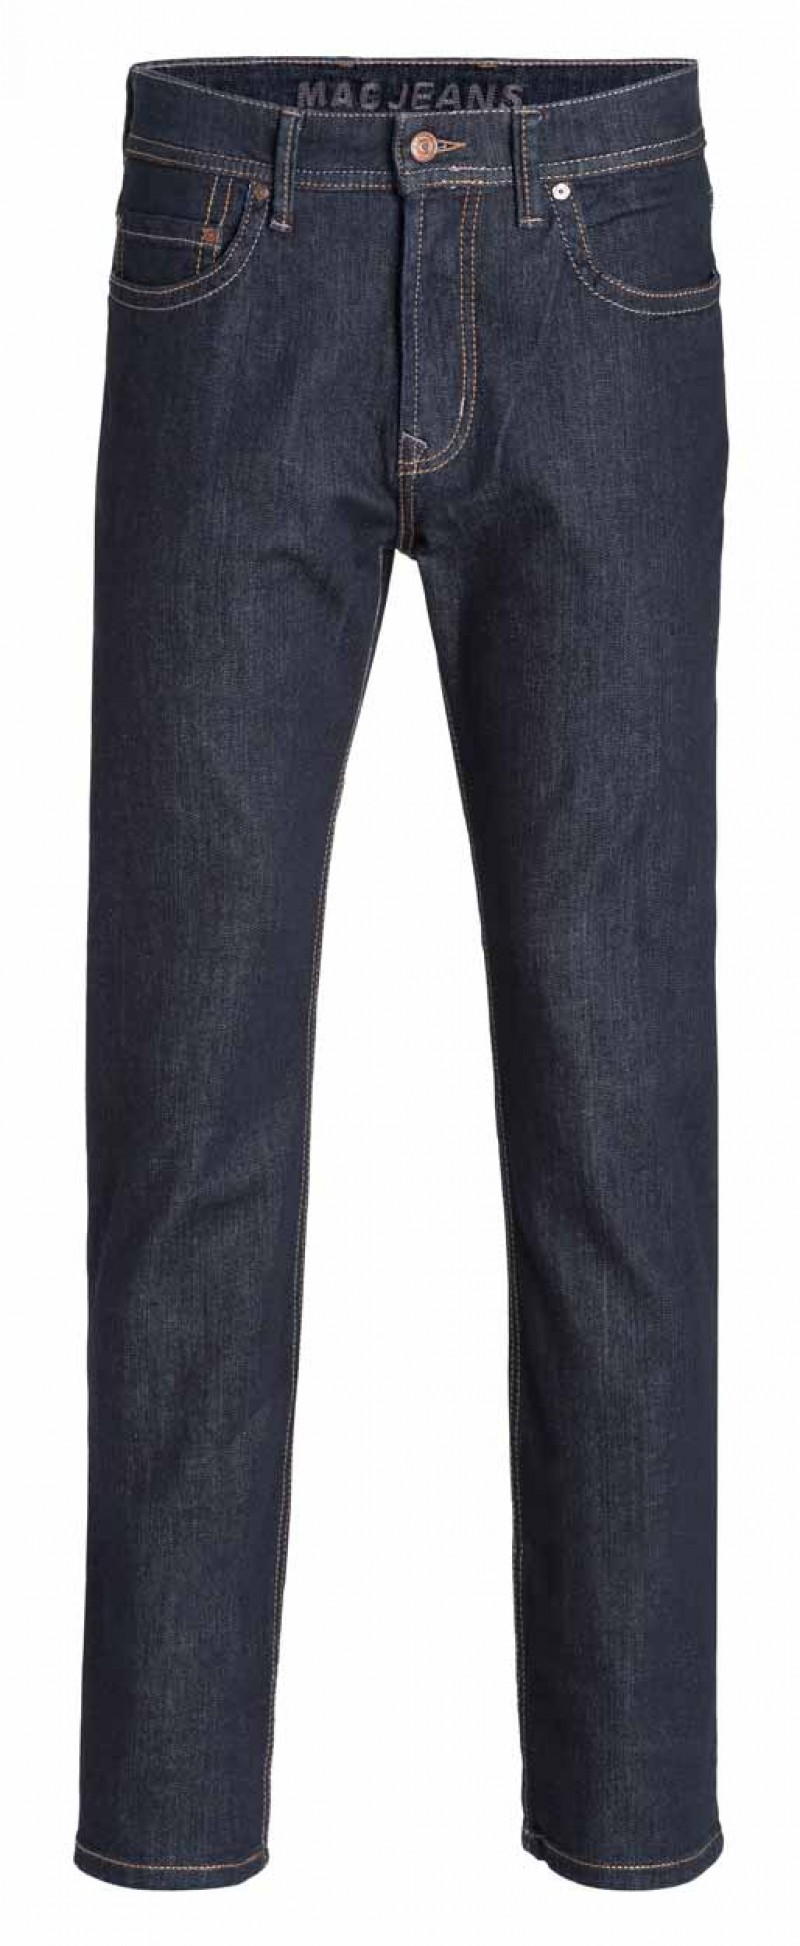 Mac Ben Jeans - Regular Fit - Authentic Dark Blue